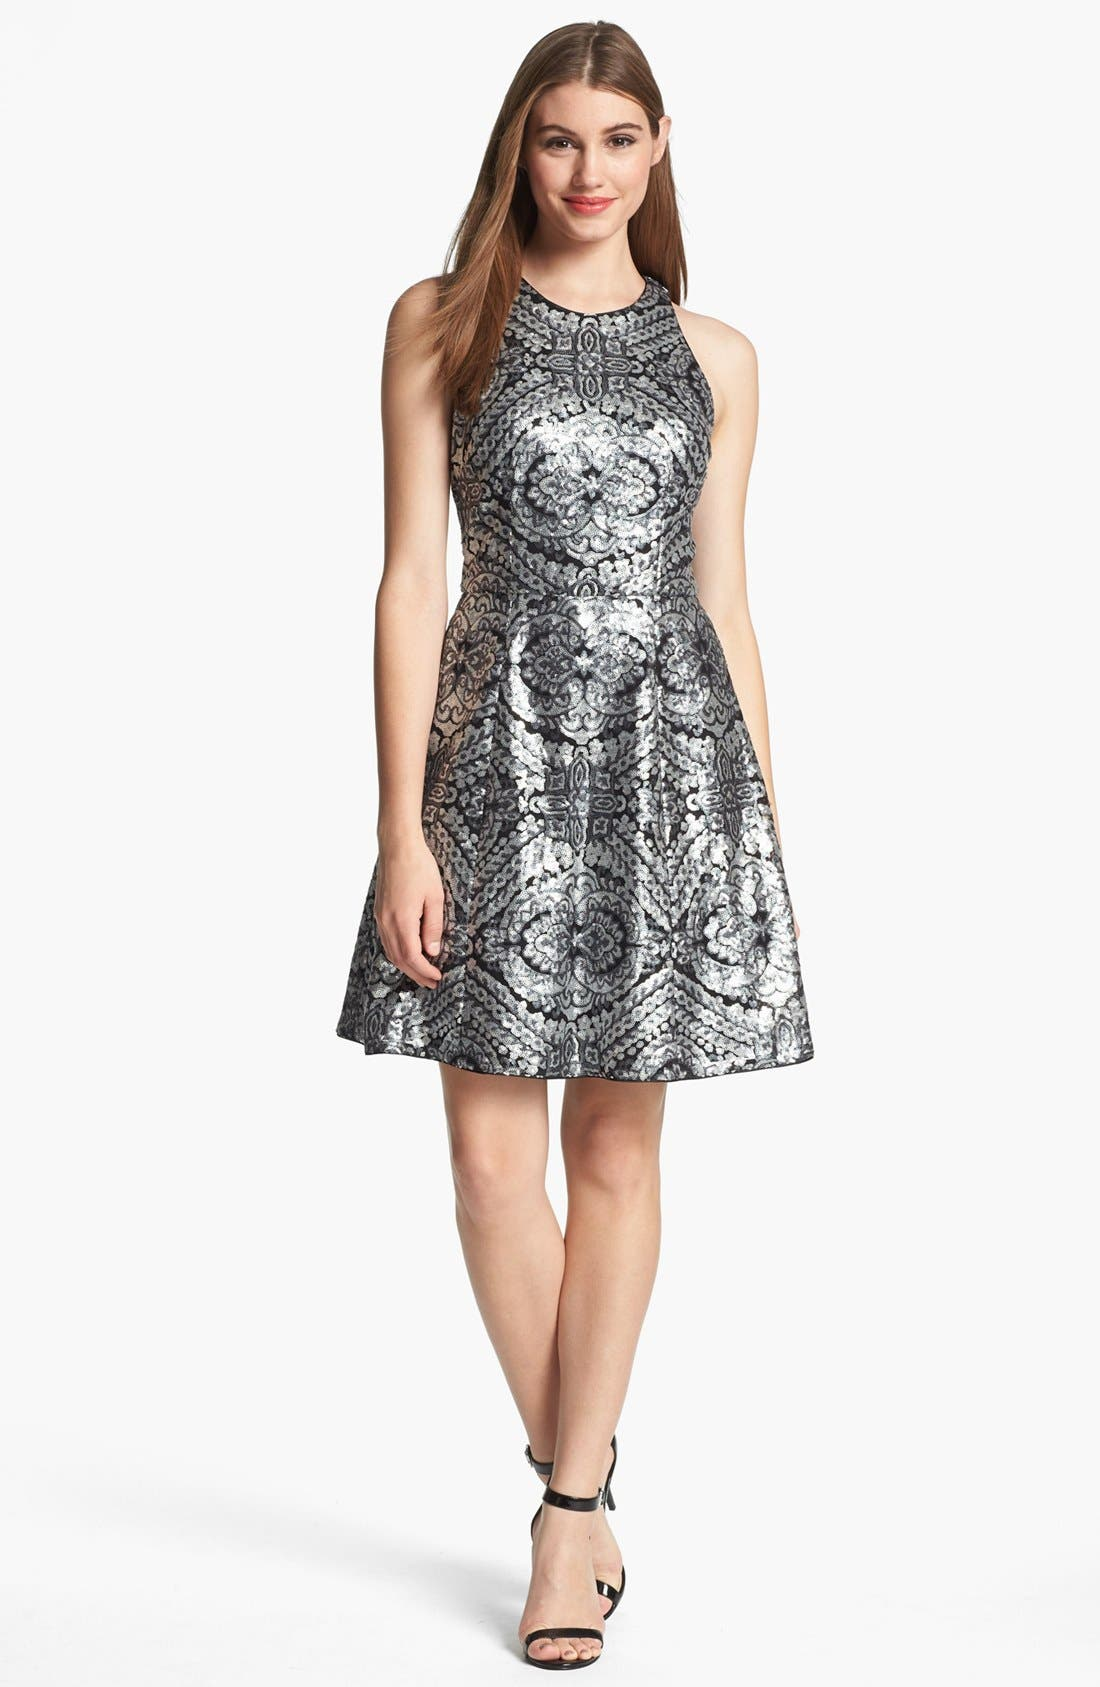 Alternate Image 1 Selected - Adrianna Papell Racerback Sequin Dress